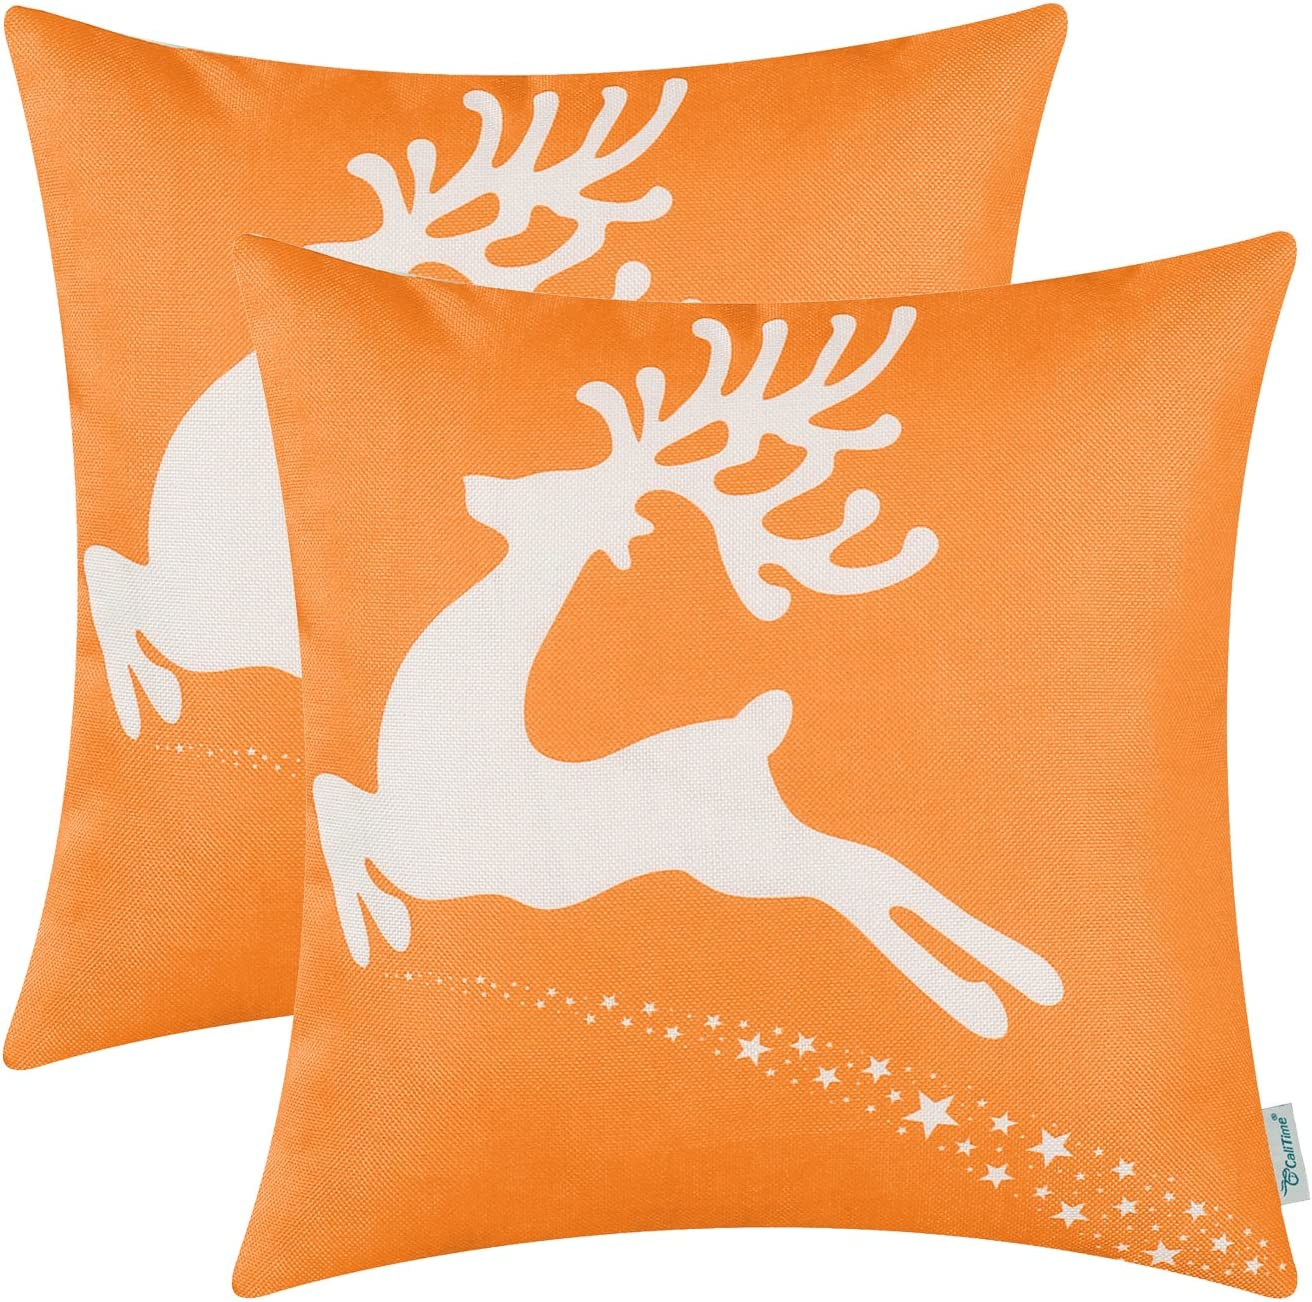 CaliTime Pack of 2 Soft Canvas Throw Pillow Covers Cases for Couch Sofa Home Decoration Christmas Holiday Reindeer with Stars Print 18 X 18 Inches Bright Orange